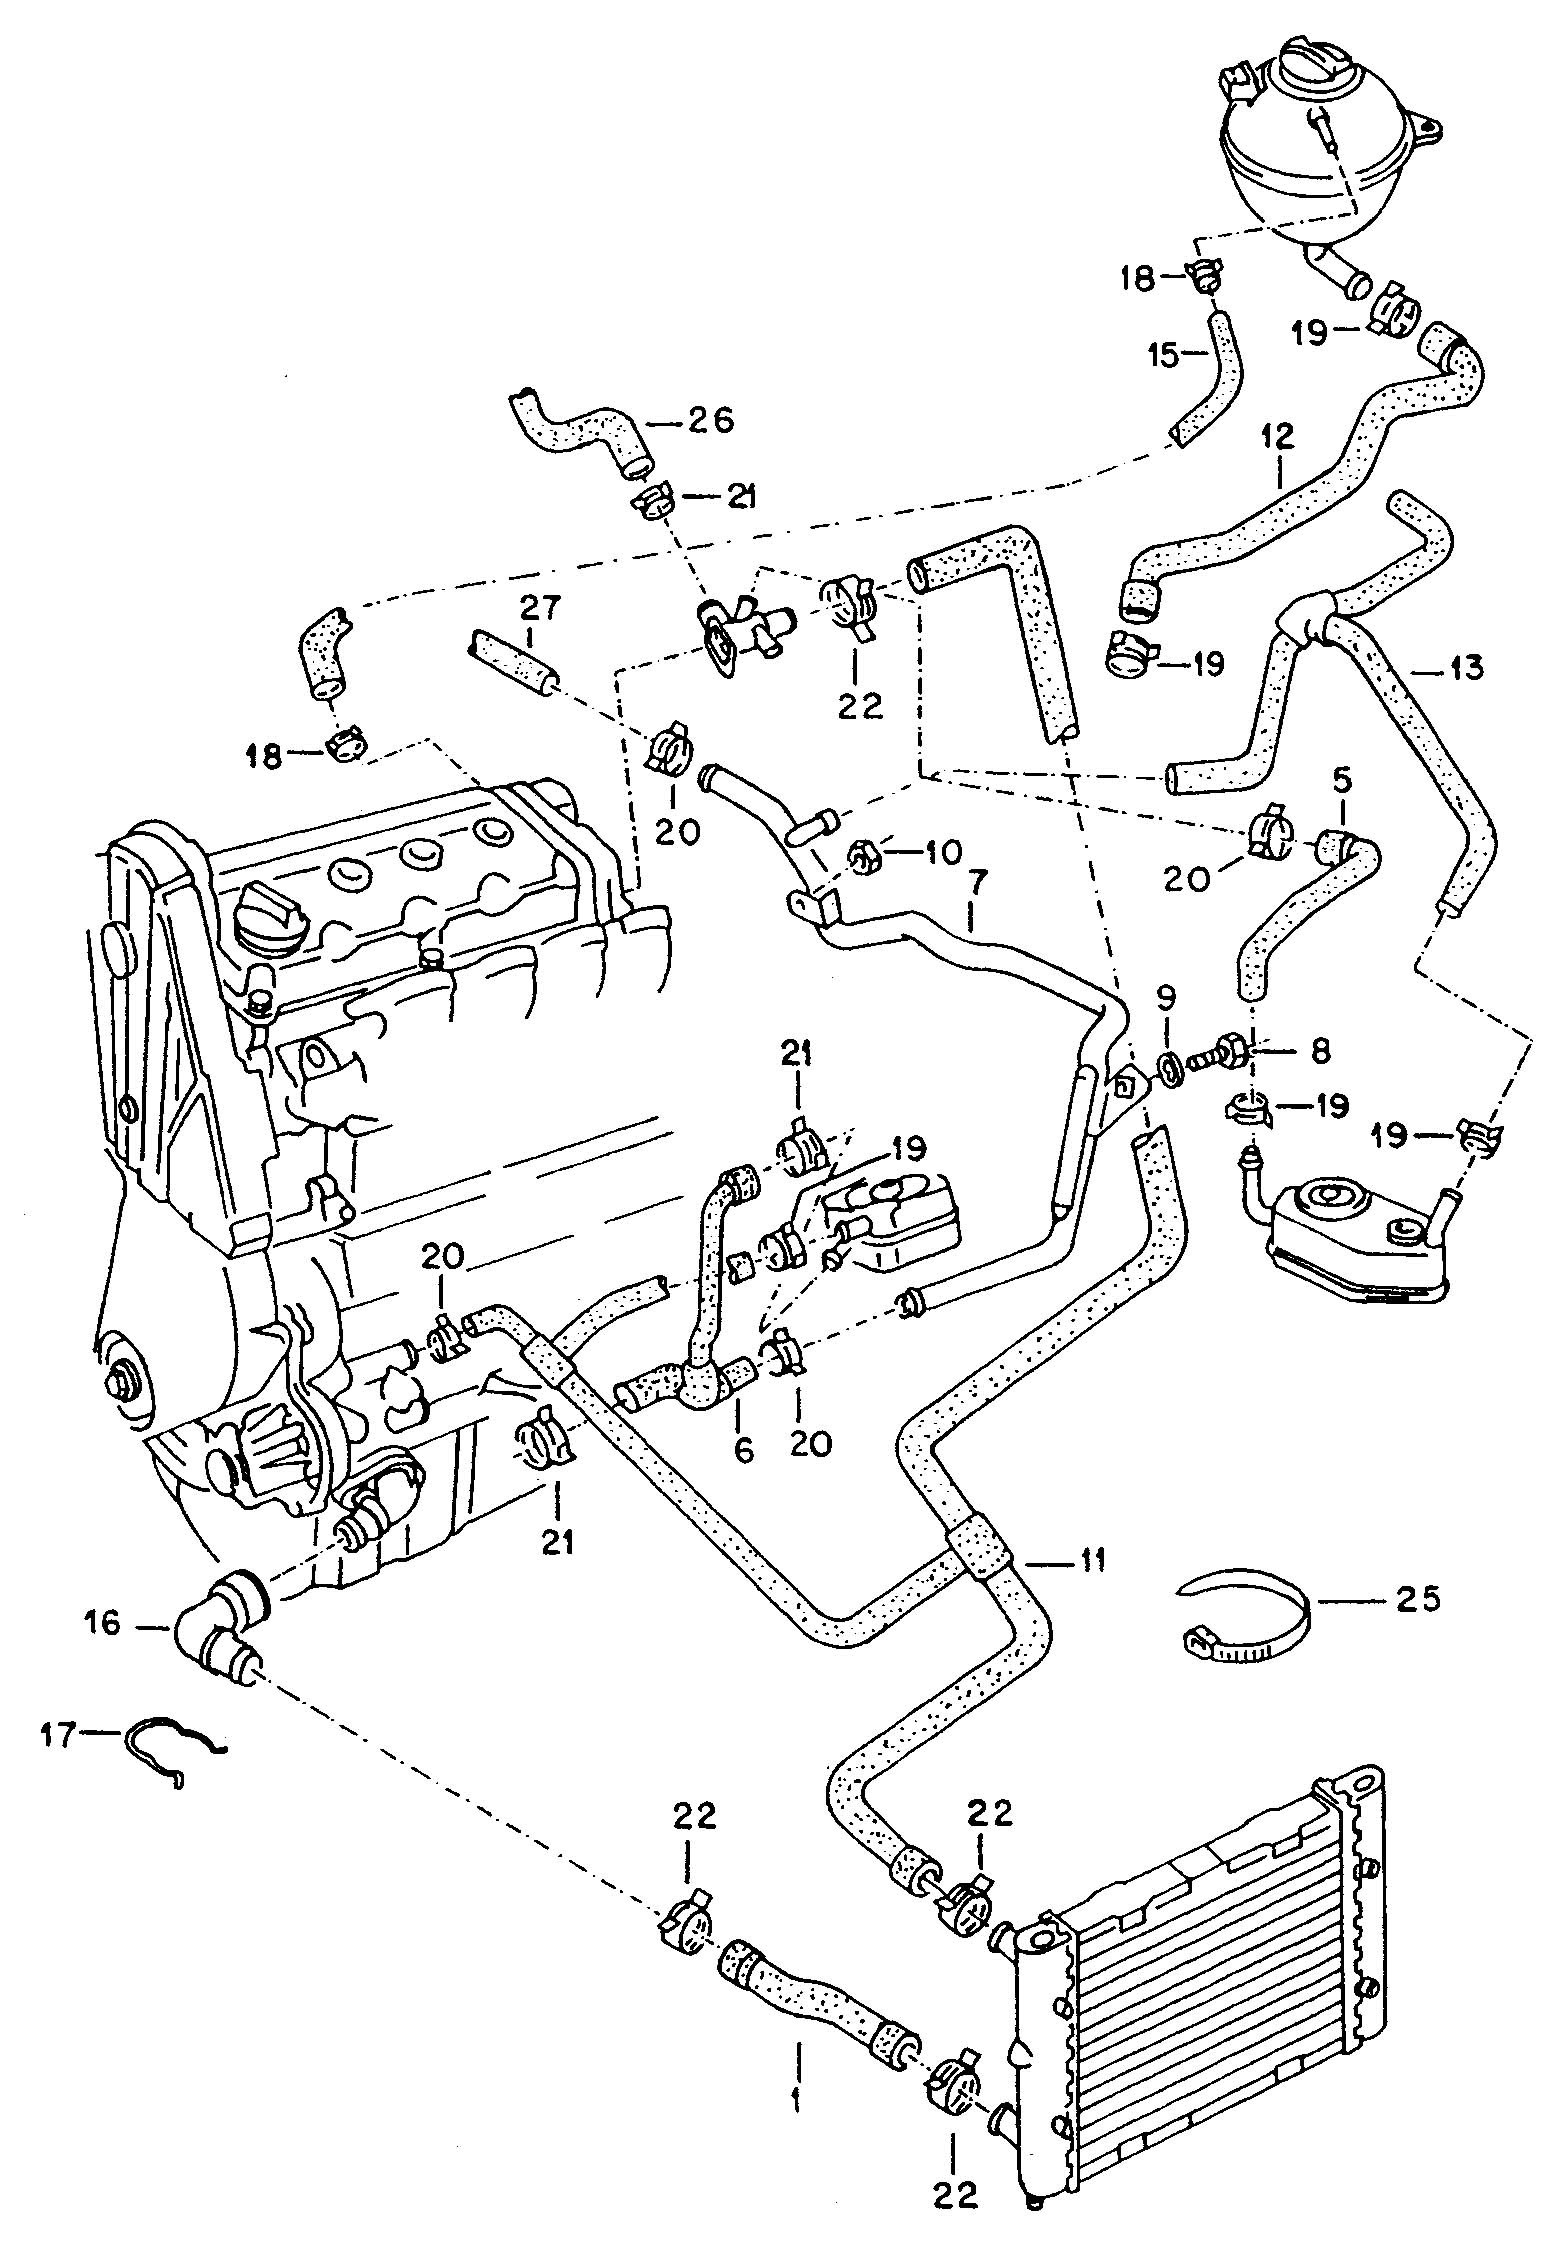 Vw Engine Parts Diagram thesamba Vanagon View topic 2 0 Aba Swap Of Vw Engine Parts Diagram